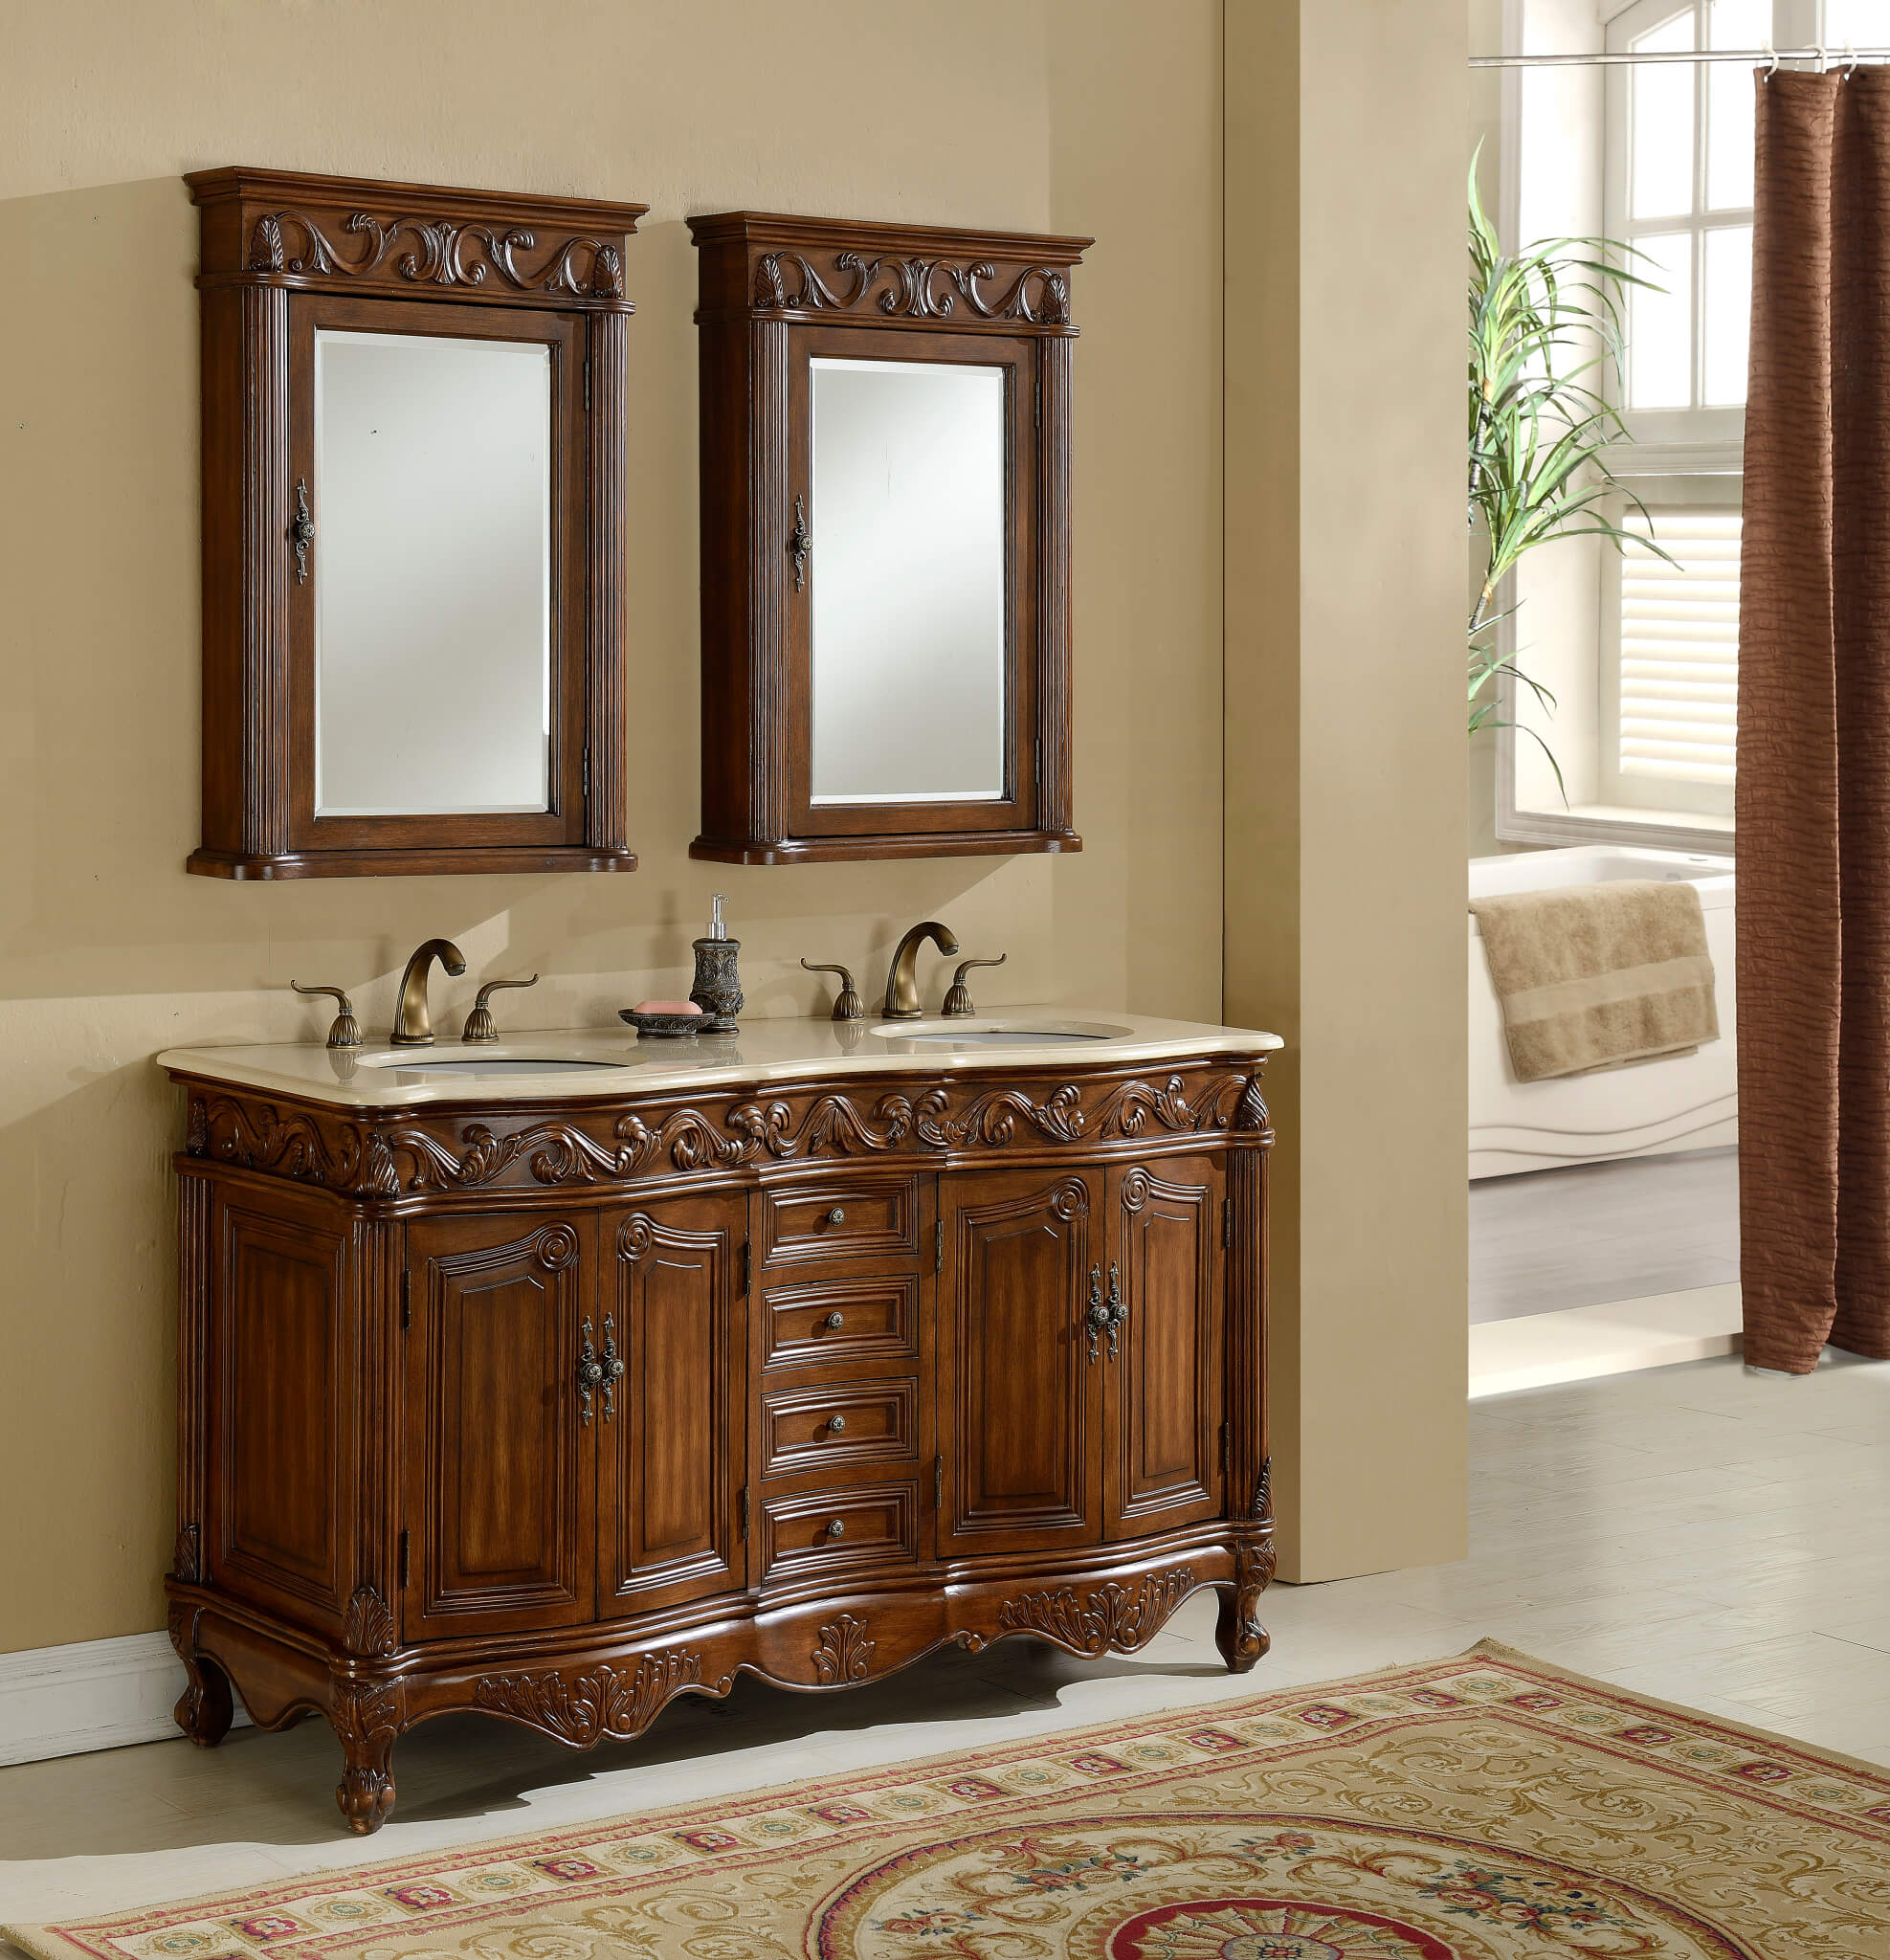 closet mirror paint vanity wall style vanities twin in sleek apply plain white sinks modern to plus vessel on model favorite under big window choice and floor dark bahtroom casual closed bathroom